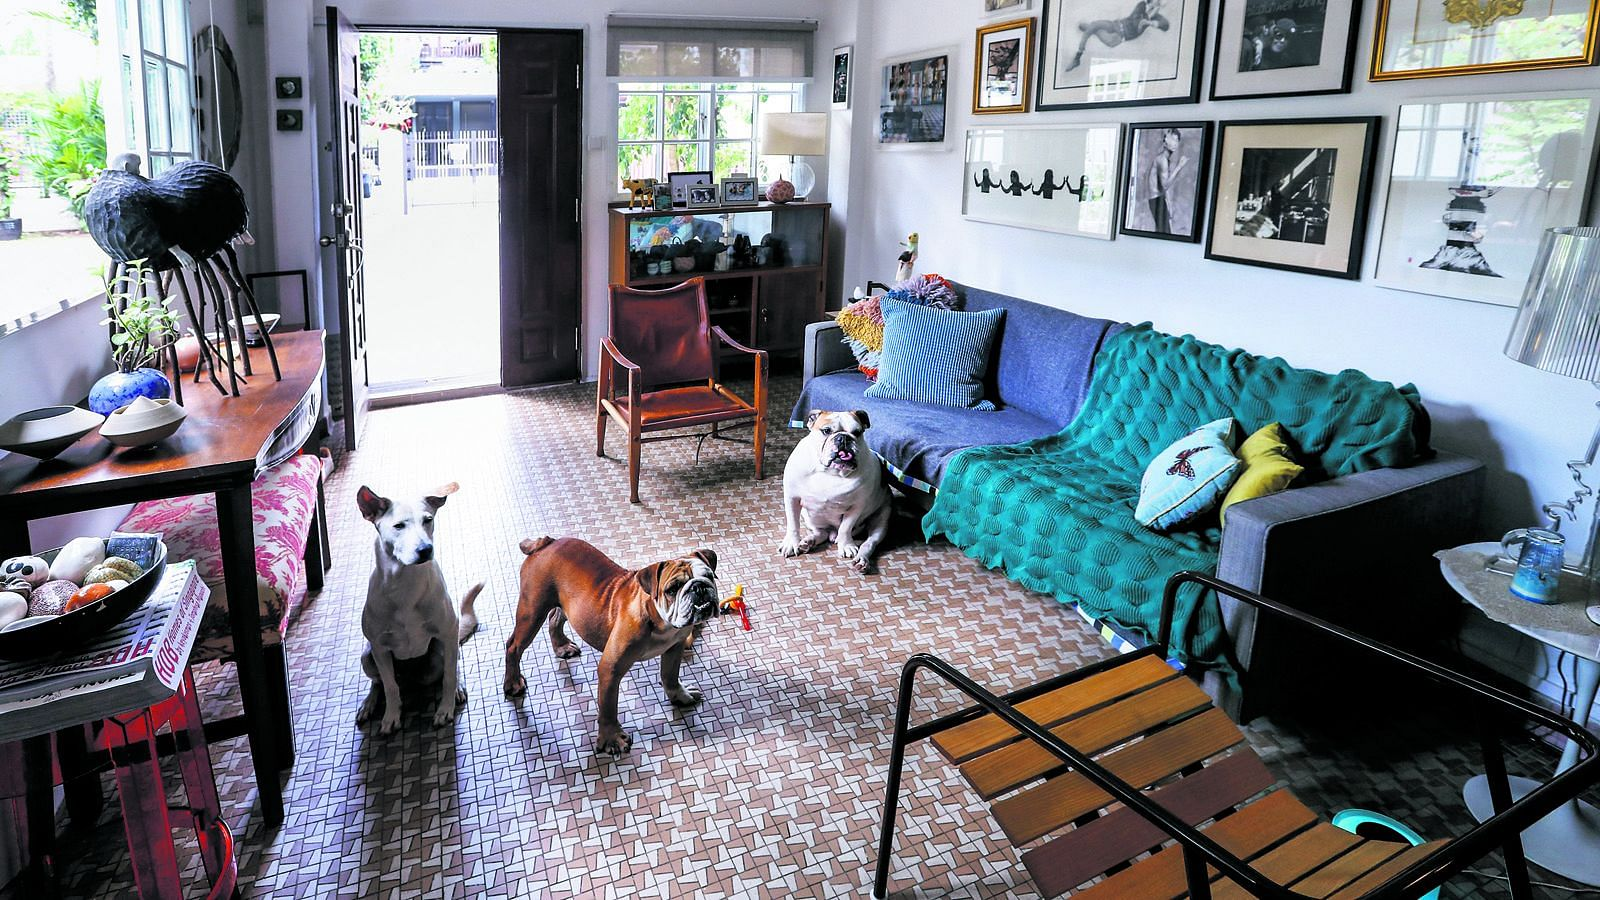 House Tour: This homeowner designed his semi-deteched house around his dogs and art collection title=